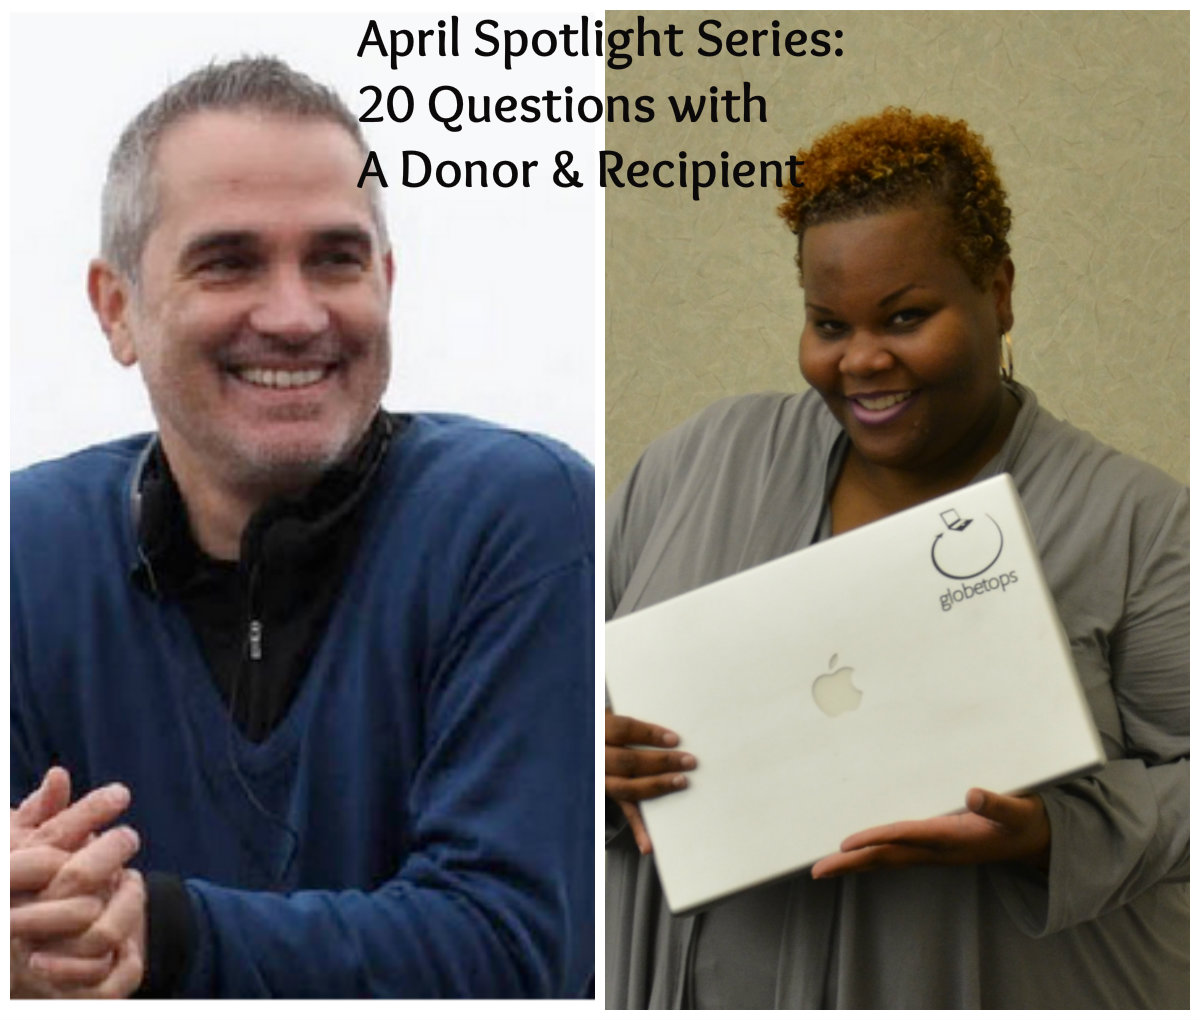 April Spotlight Series: 20 Questions with A Donor & Recipient